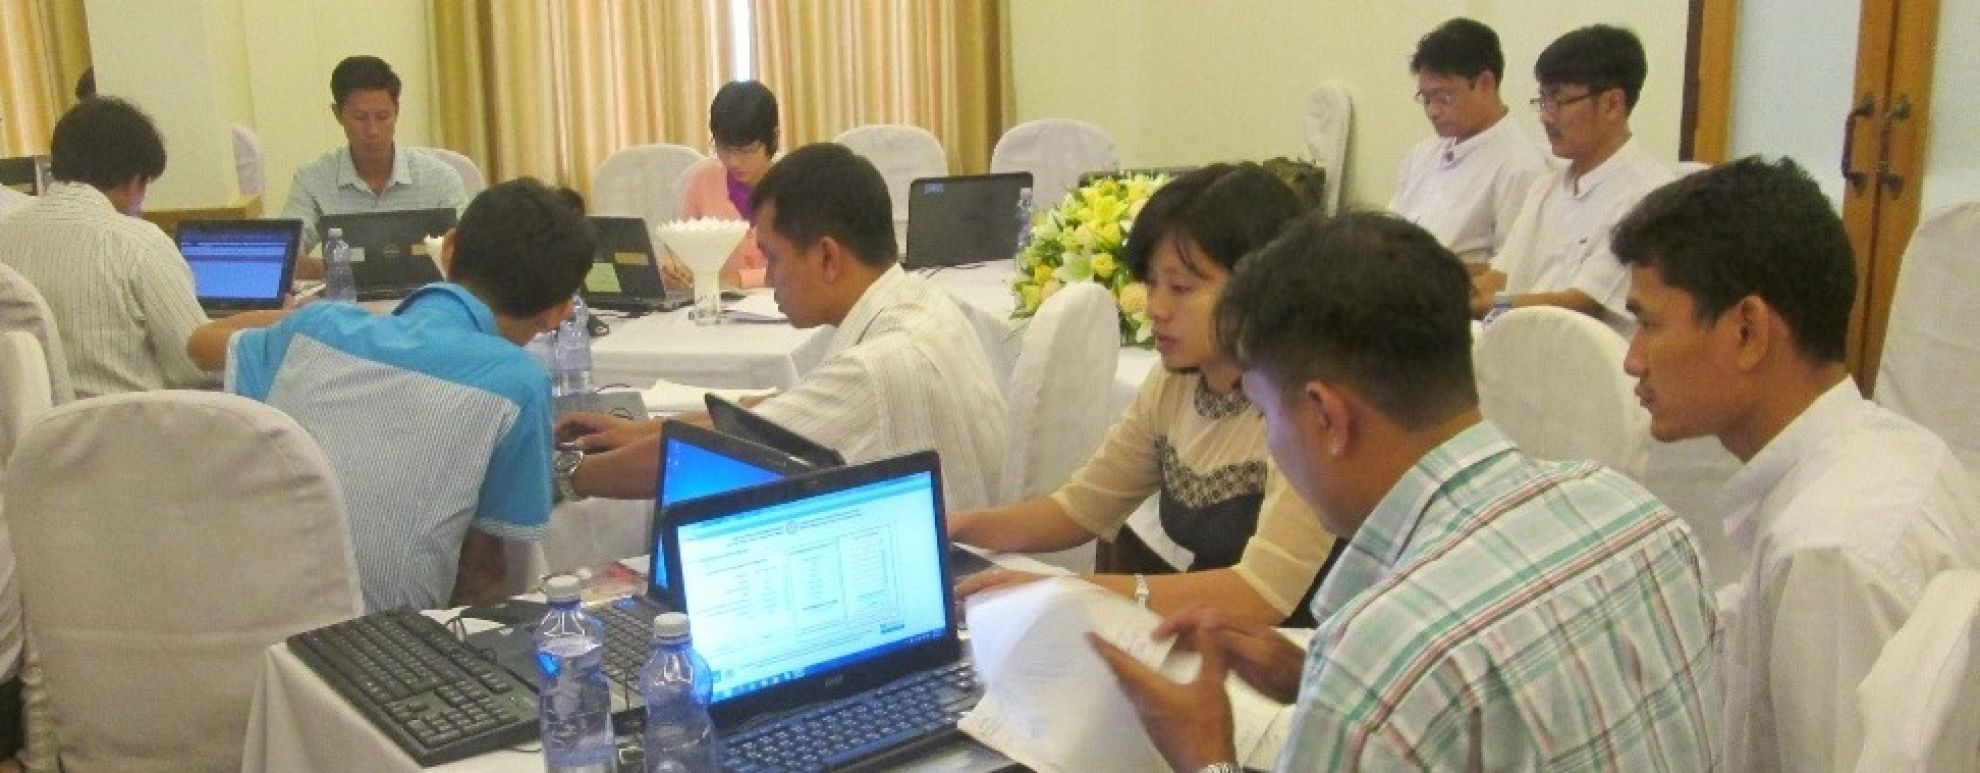 Latest News Training for improved surveillance and data management in myanmar